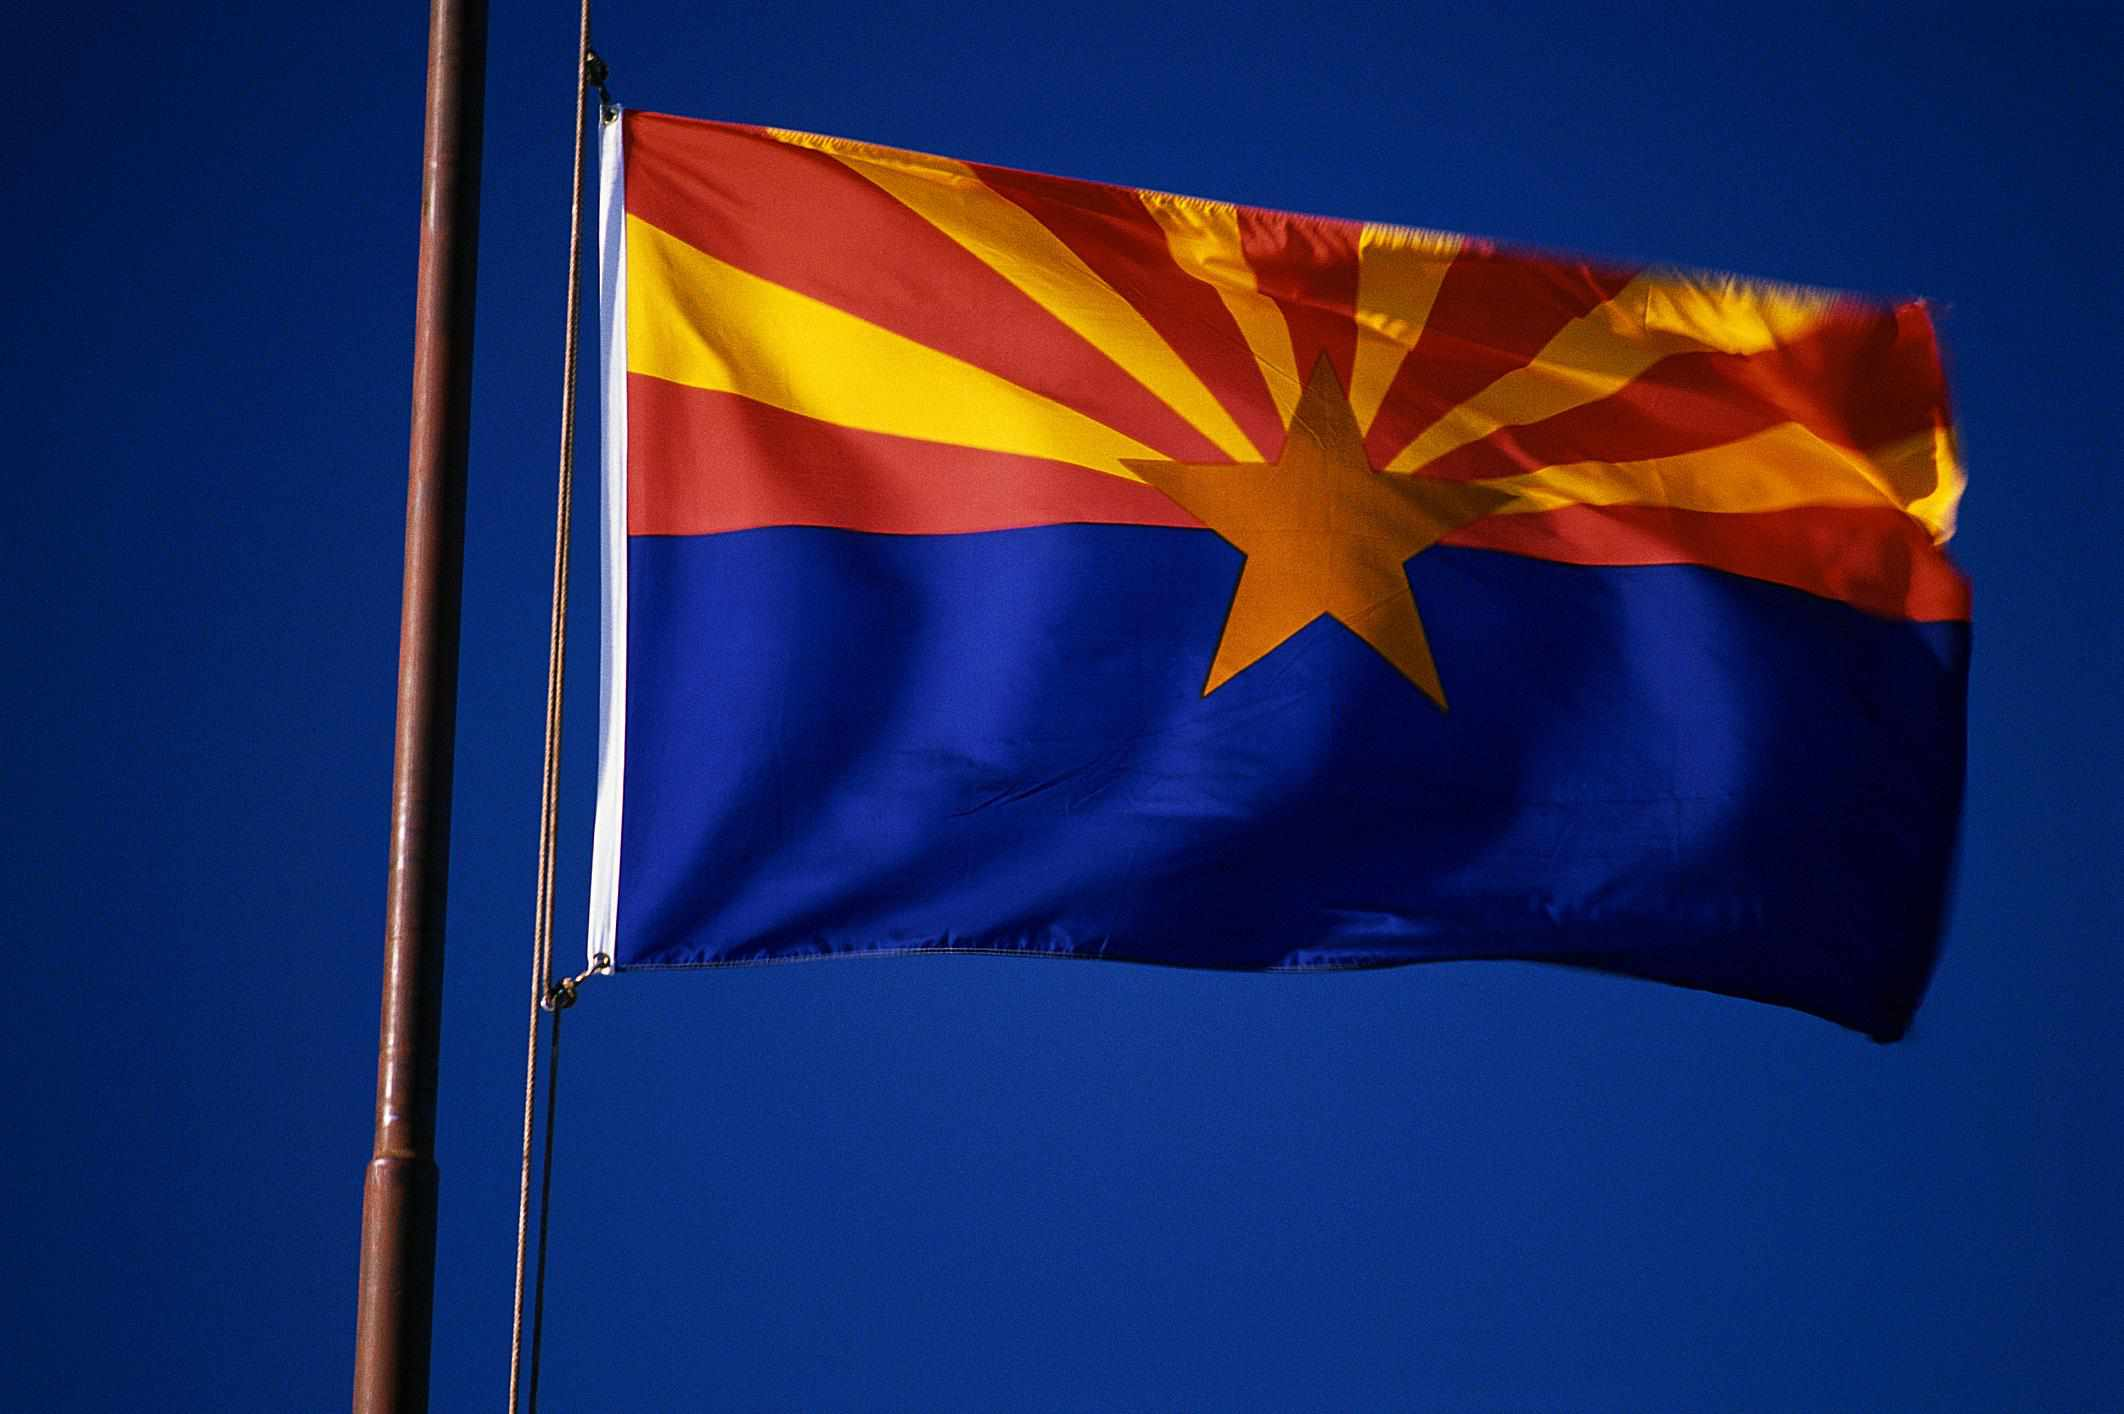 Arizona flag - Fotosearch - GettyImages-124287264